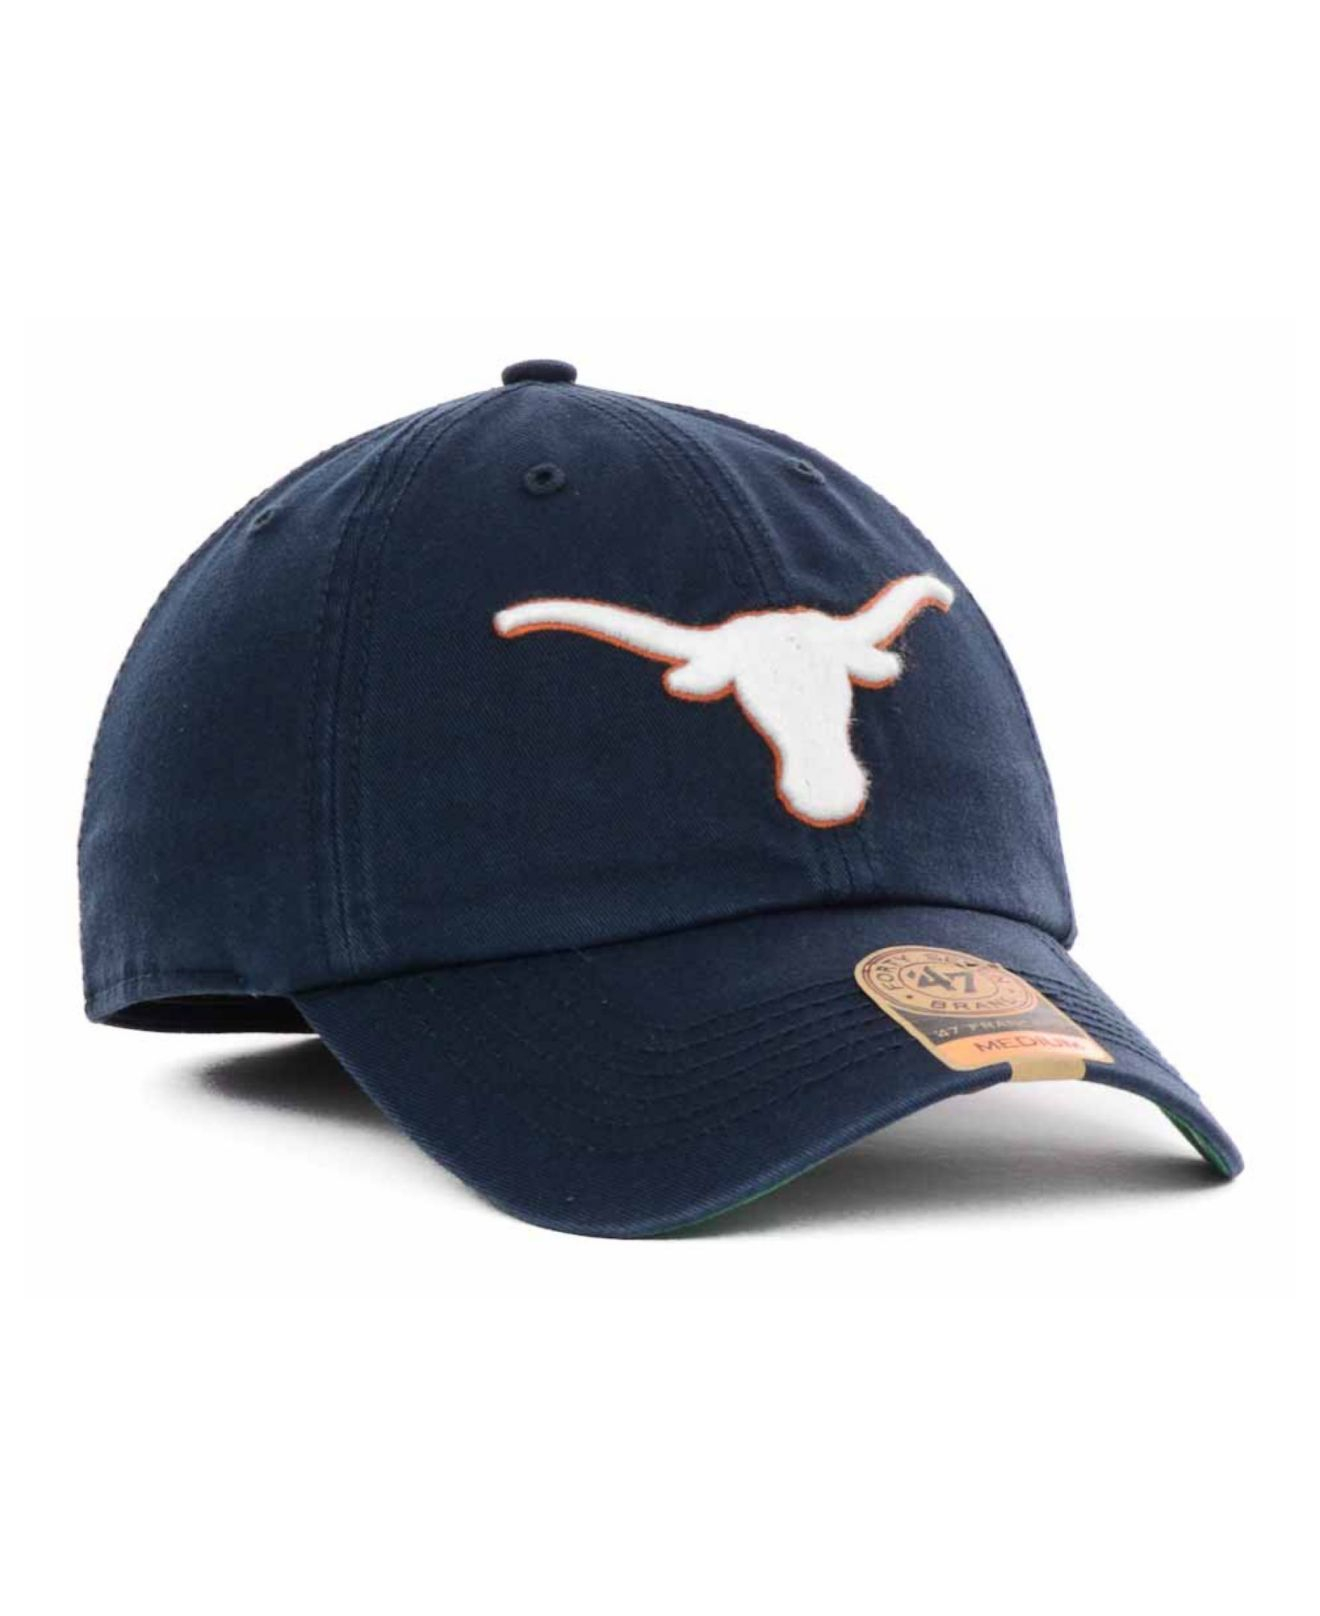 finest selection b656f 026ac ... italy lyst 47 brand texas longhorns navy franchise cap in blue for men  67b96 116fc ...